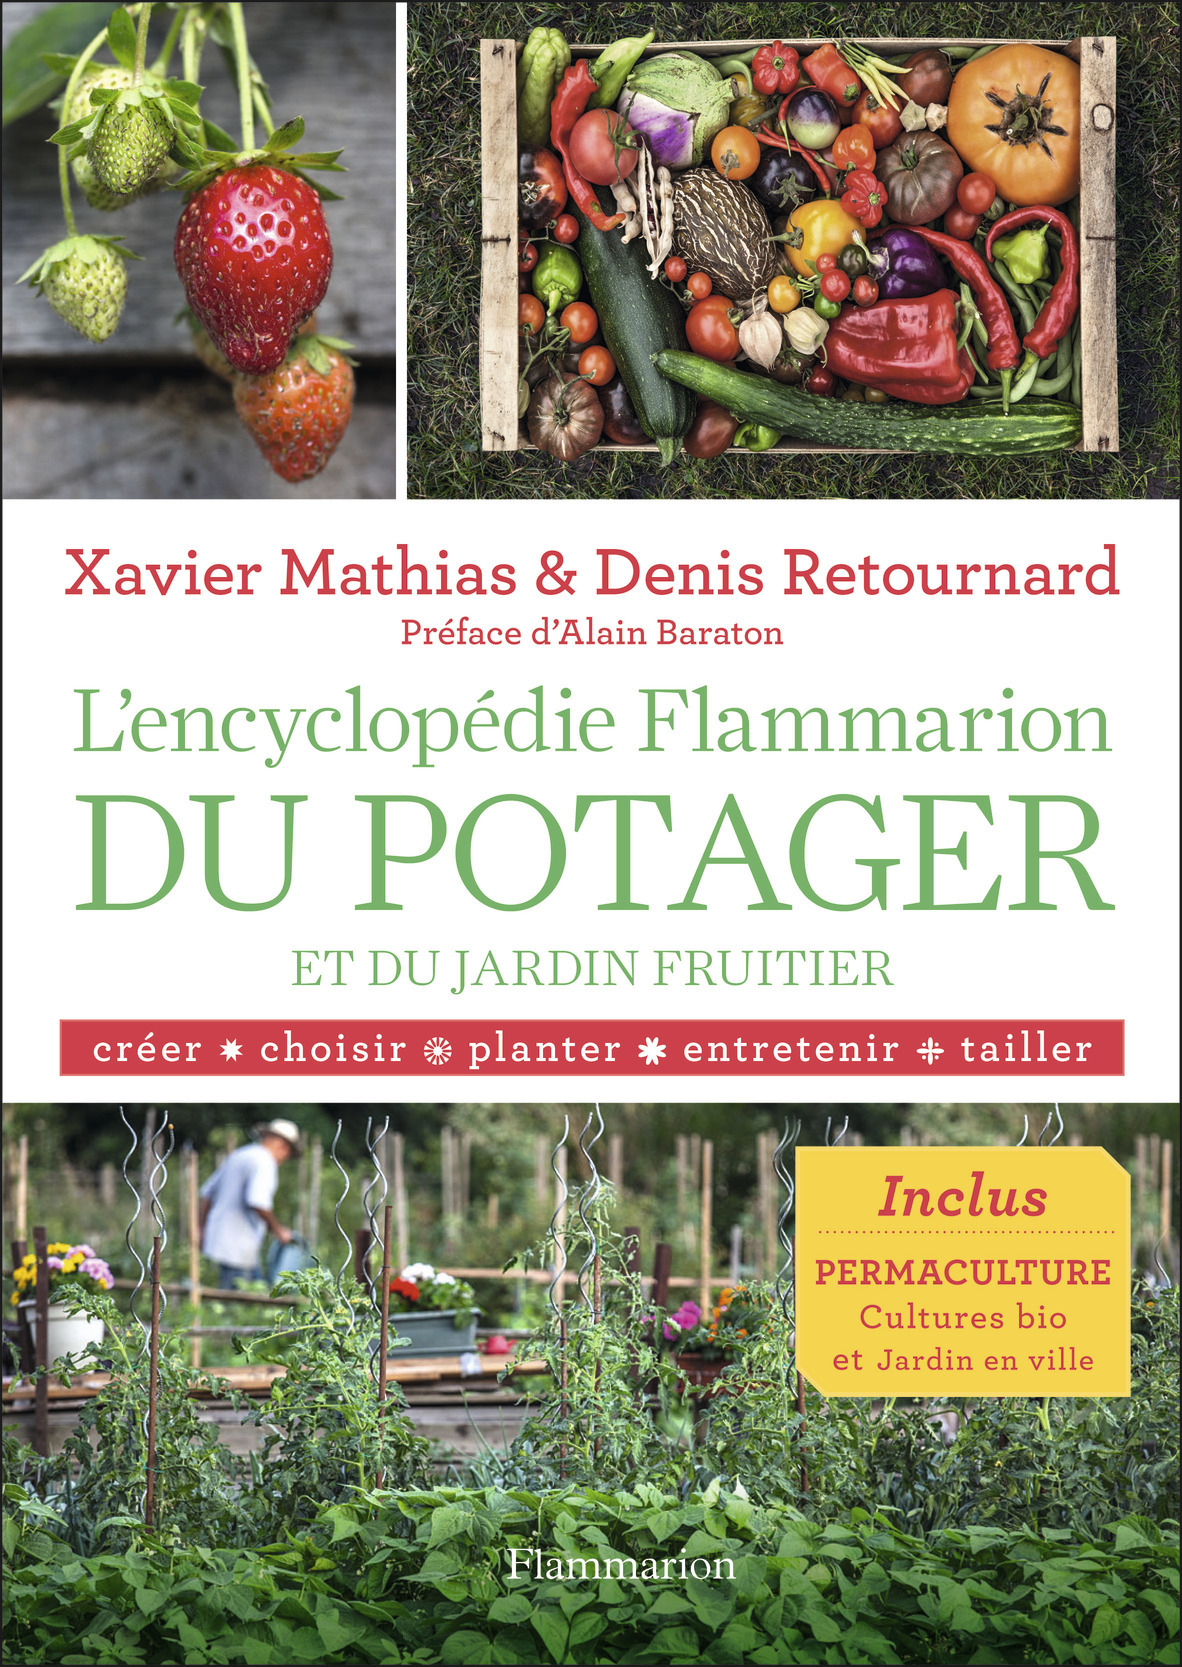 ENCYCLOPEDIE FLAMMARION DU POTAGER